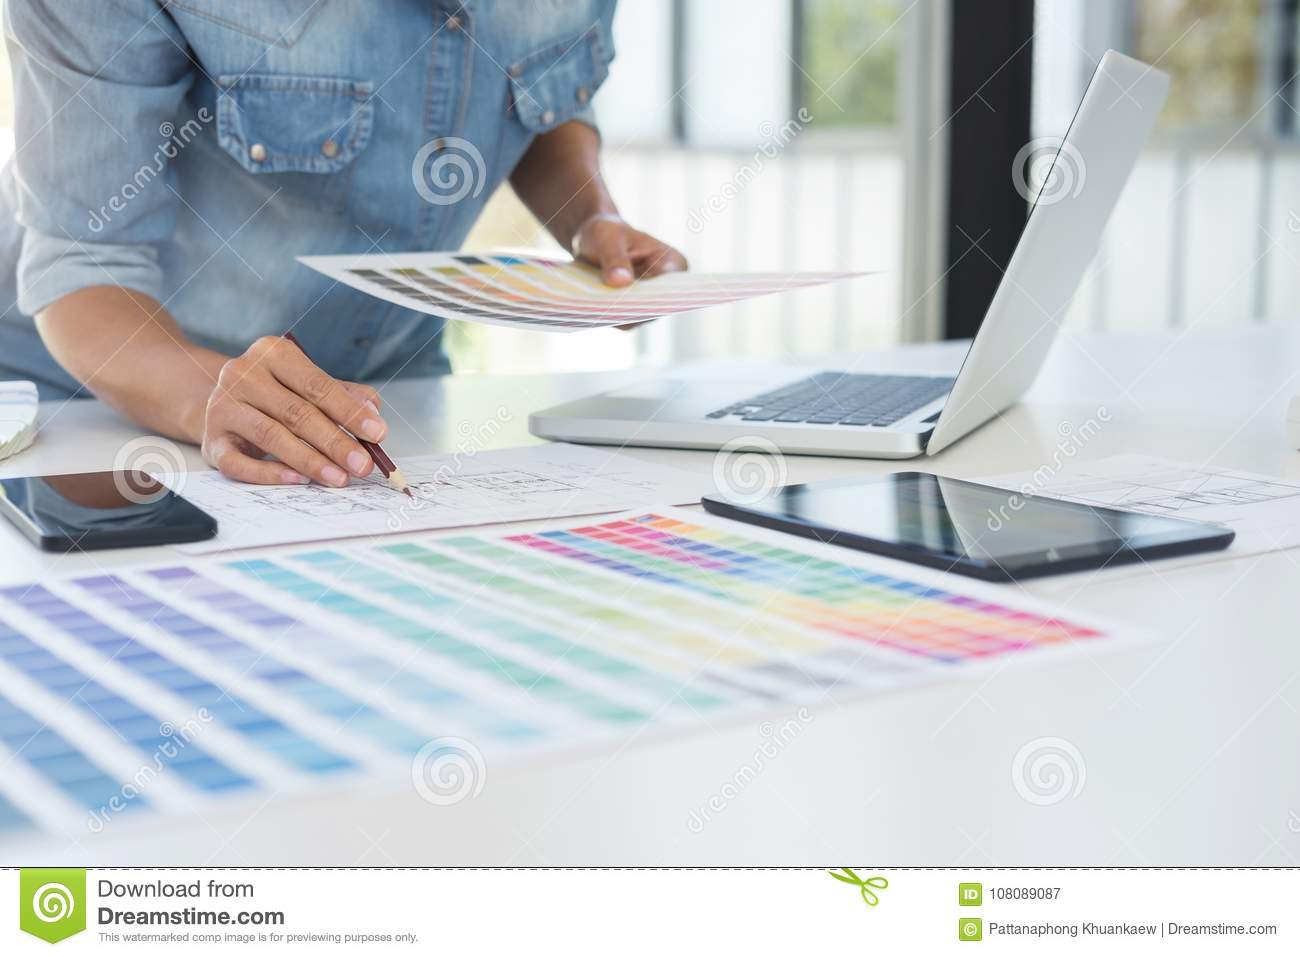 Color samples, colour chart, swatch sample, Graphic designer being selecting Color table and graphics tablet, pen at workplace wi